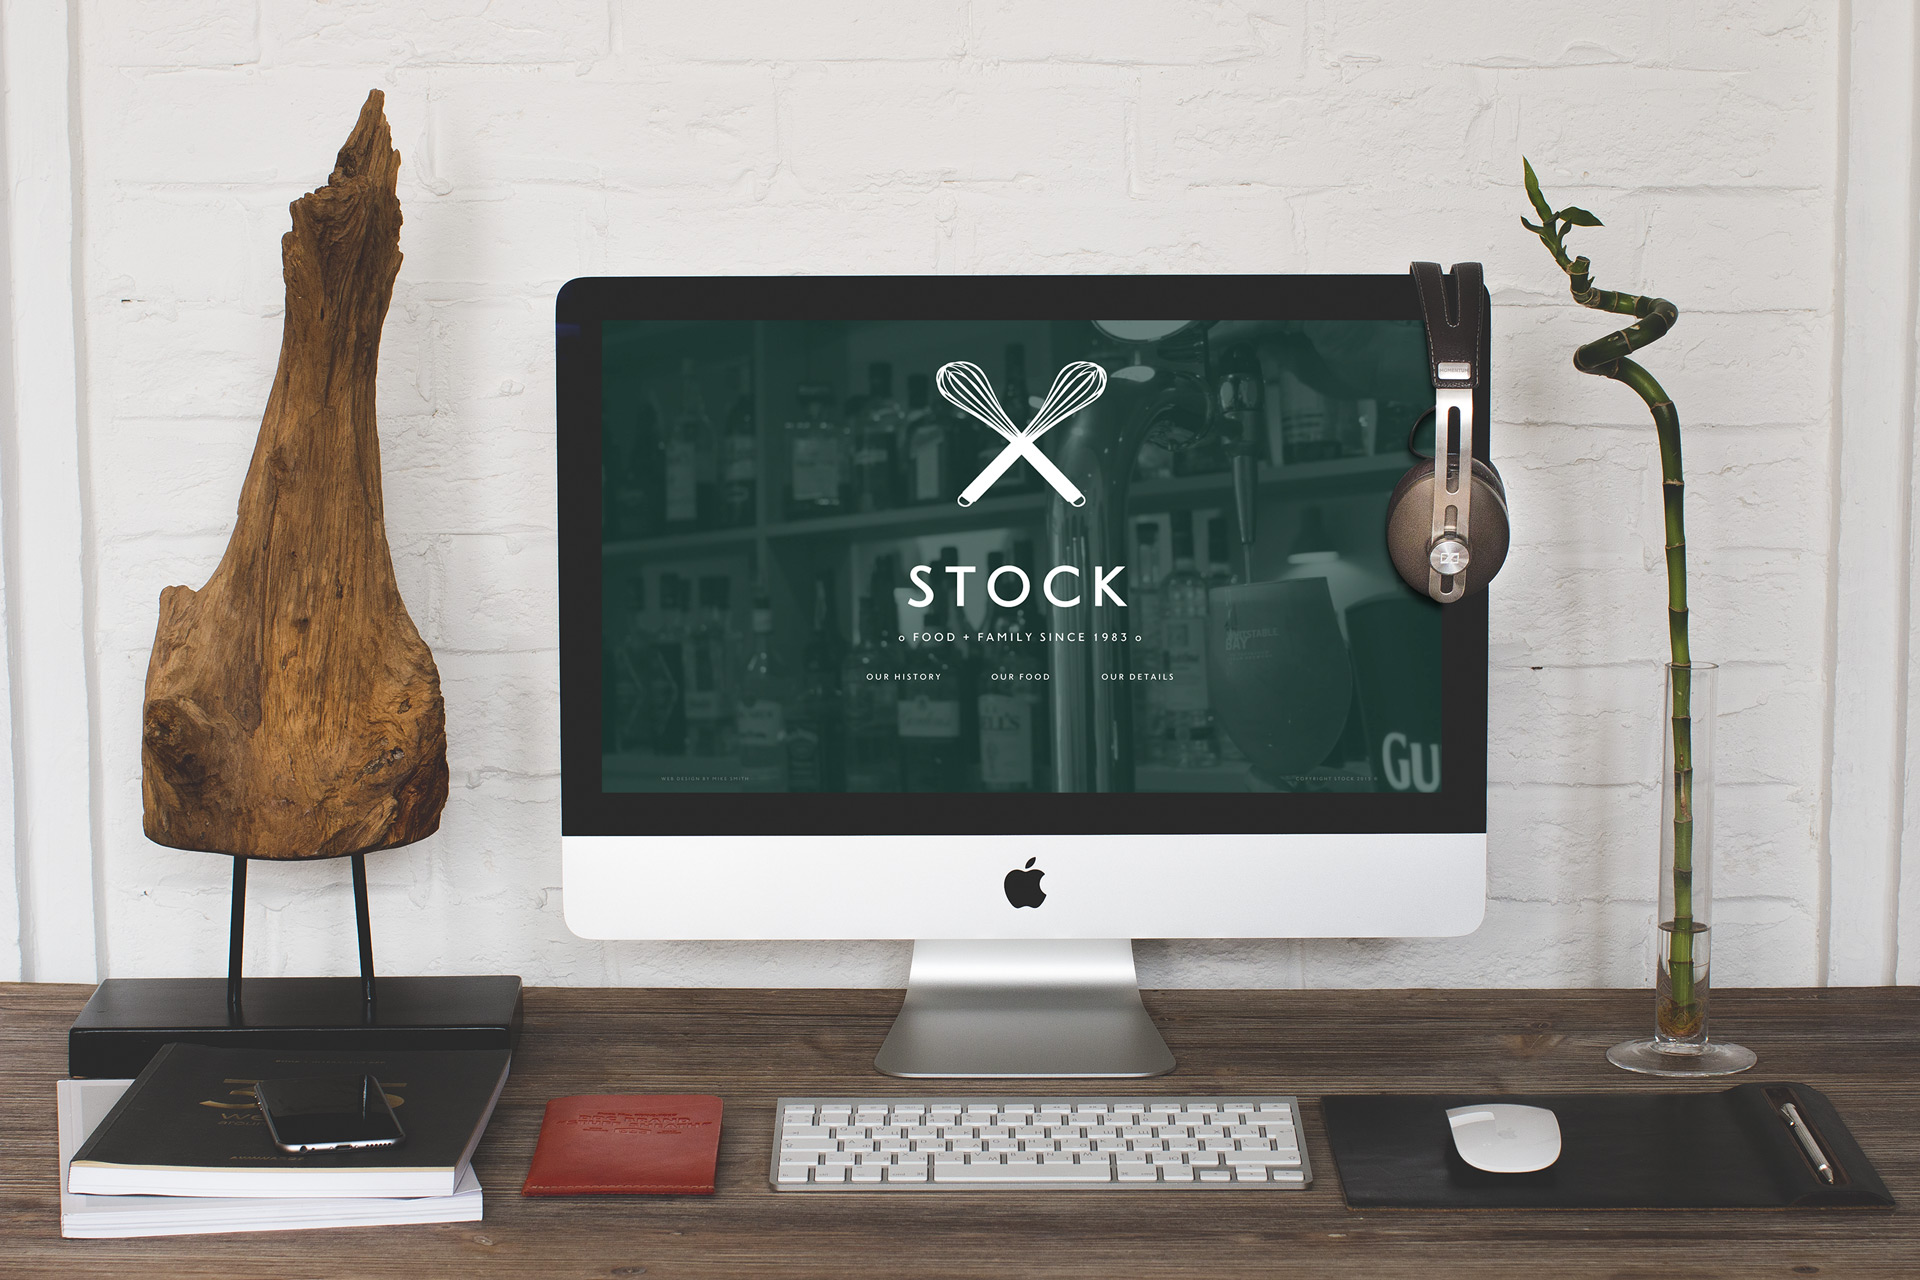 Stock Dining Room & Bar iMac